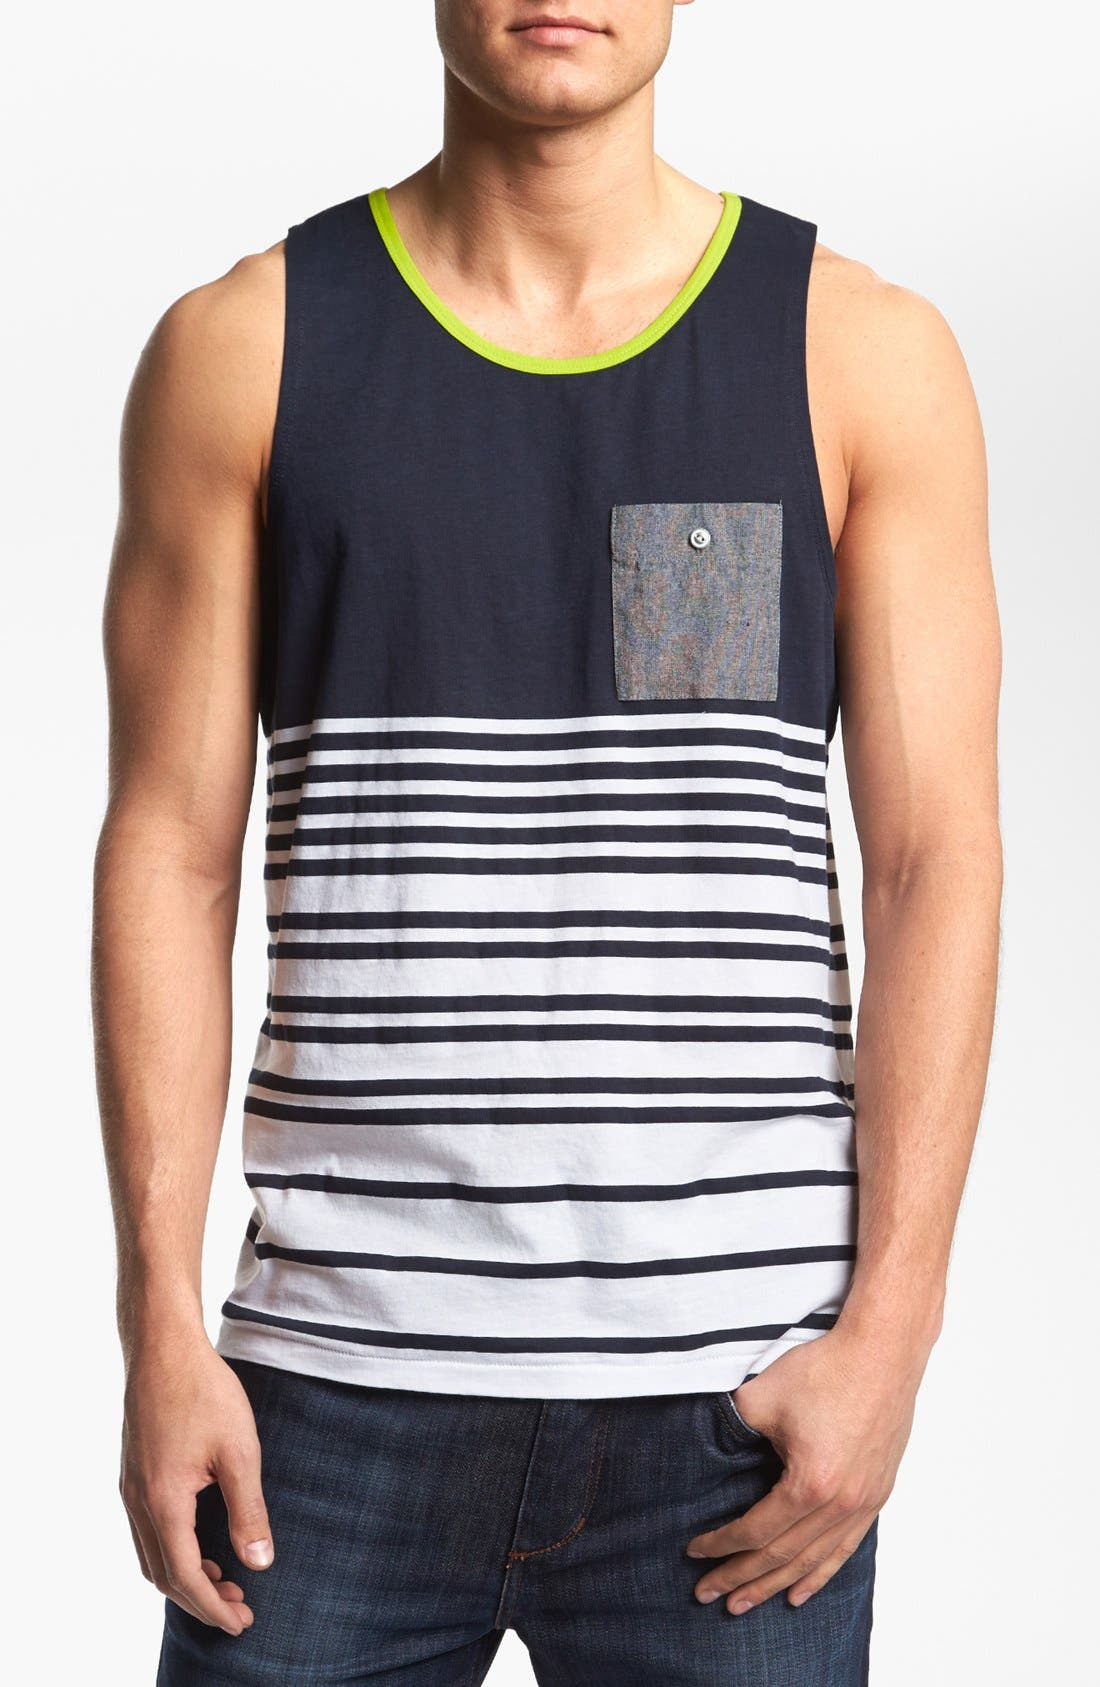 Alternate Image 1 Selected - Vans 'Beeston' Tank Top